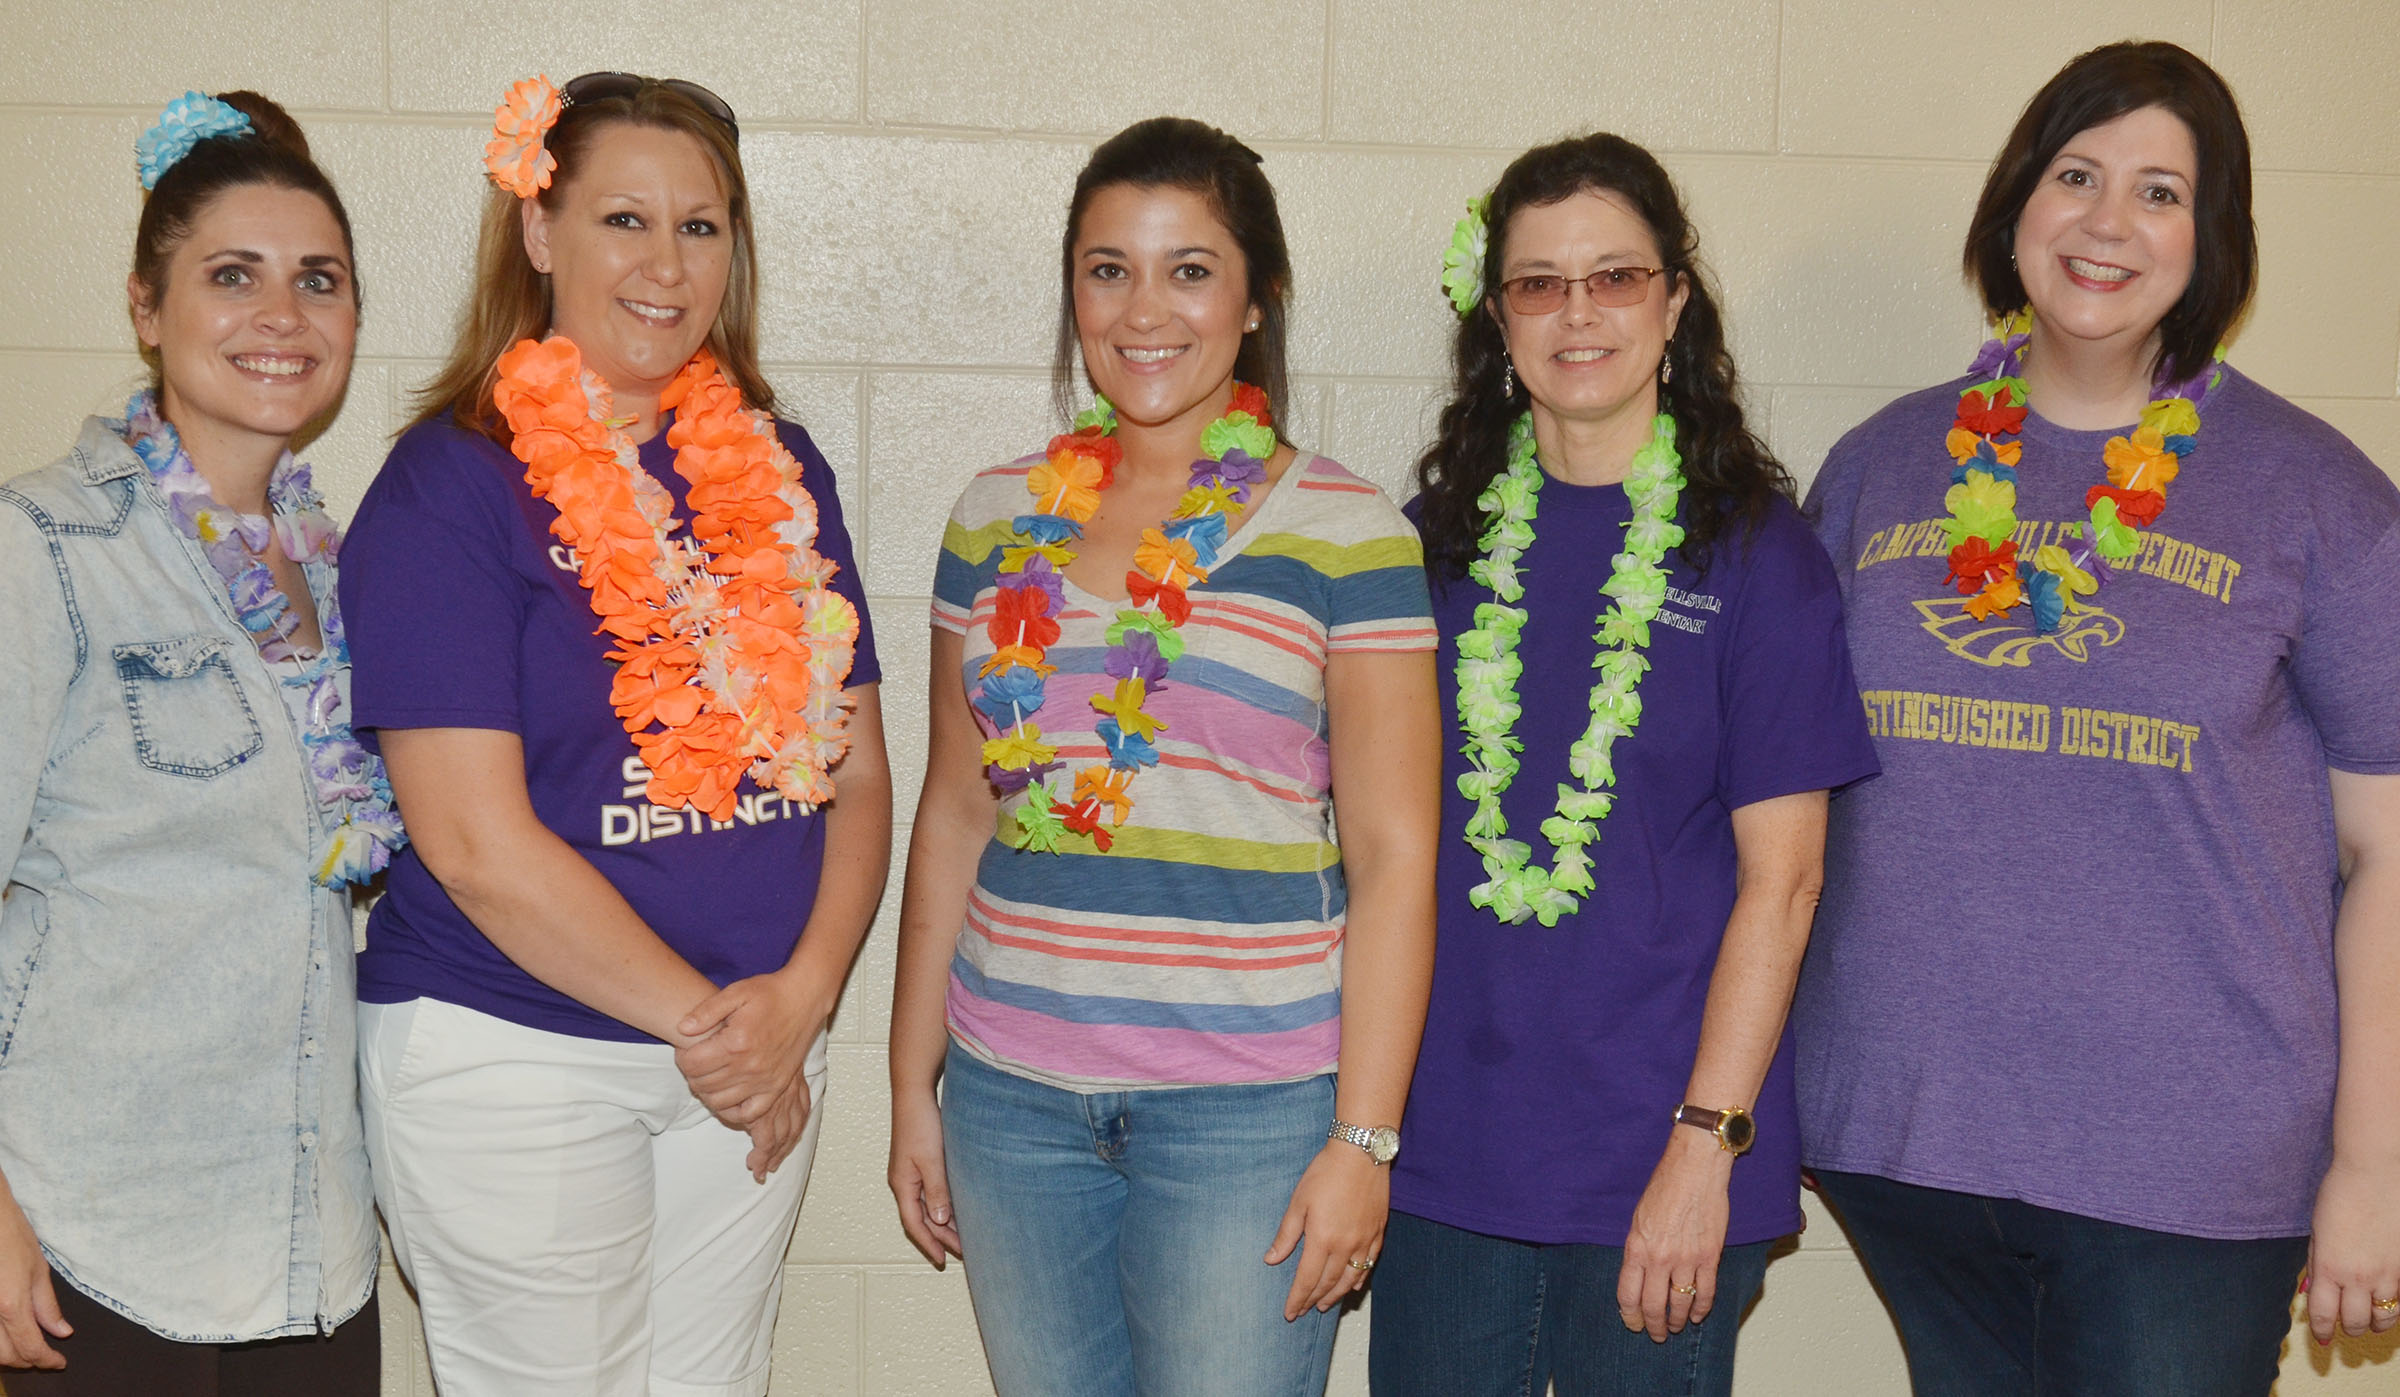 CES first-grade teachers, from left, Luci Shofner, Amanda Greer, Hailey Ogle, Shirley Cox and Lisa Mardis dress for Beach Day.